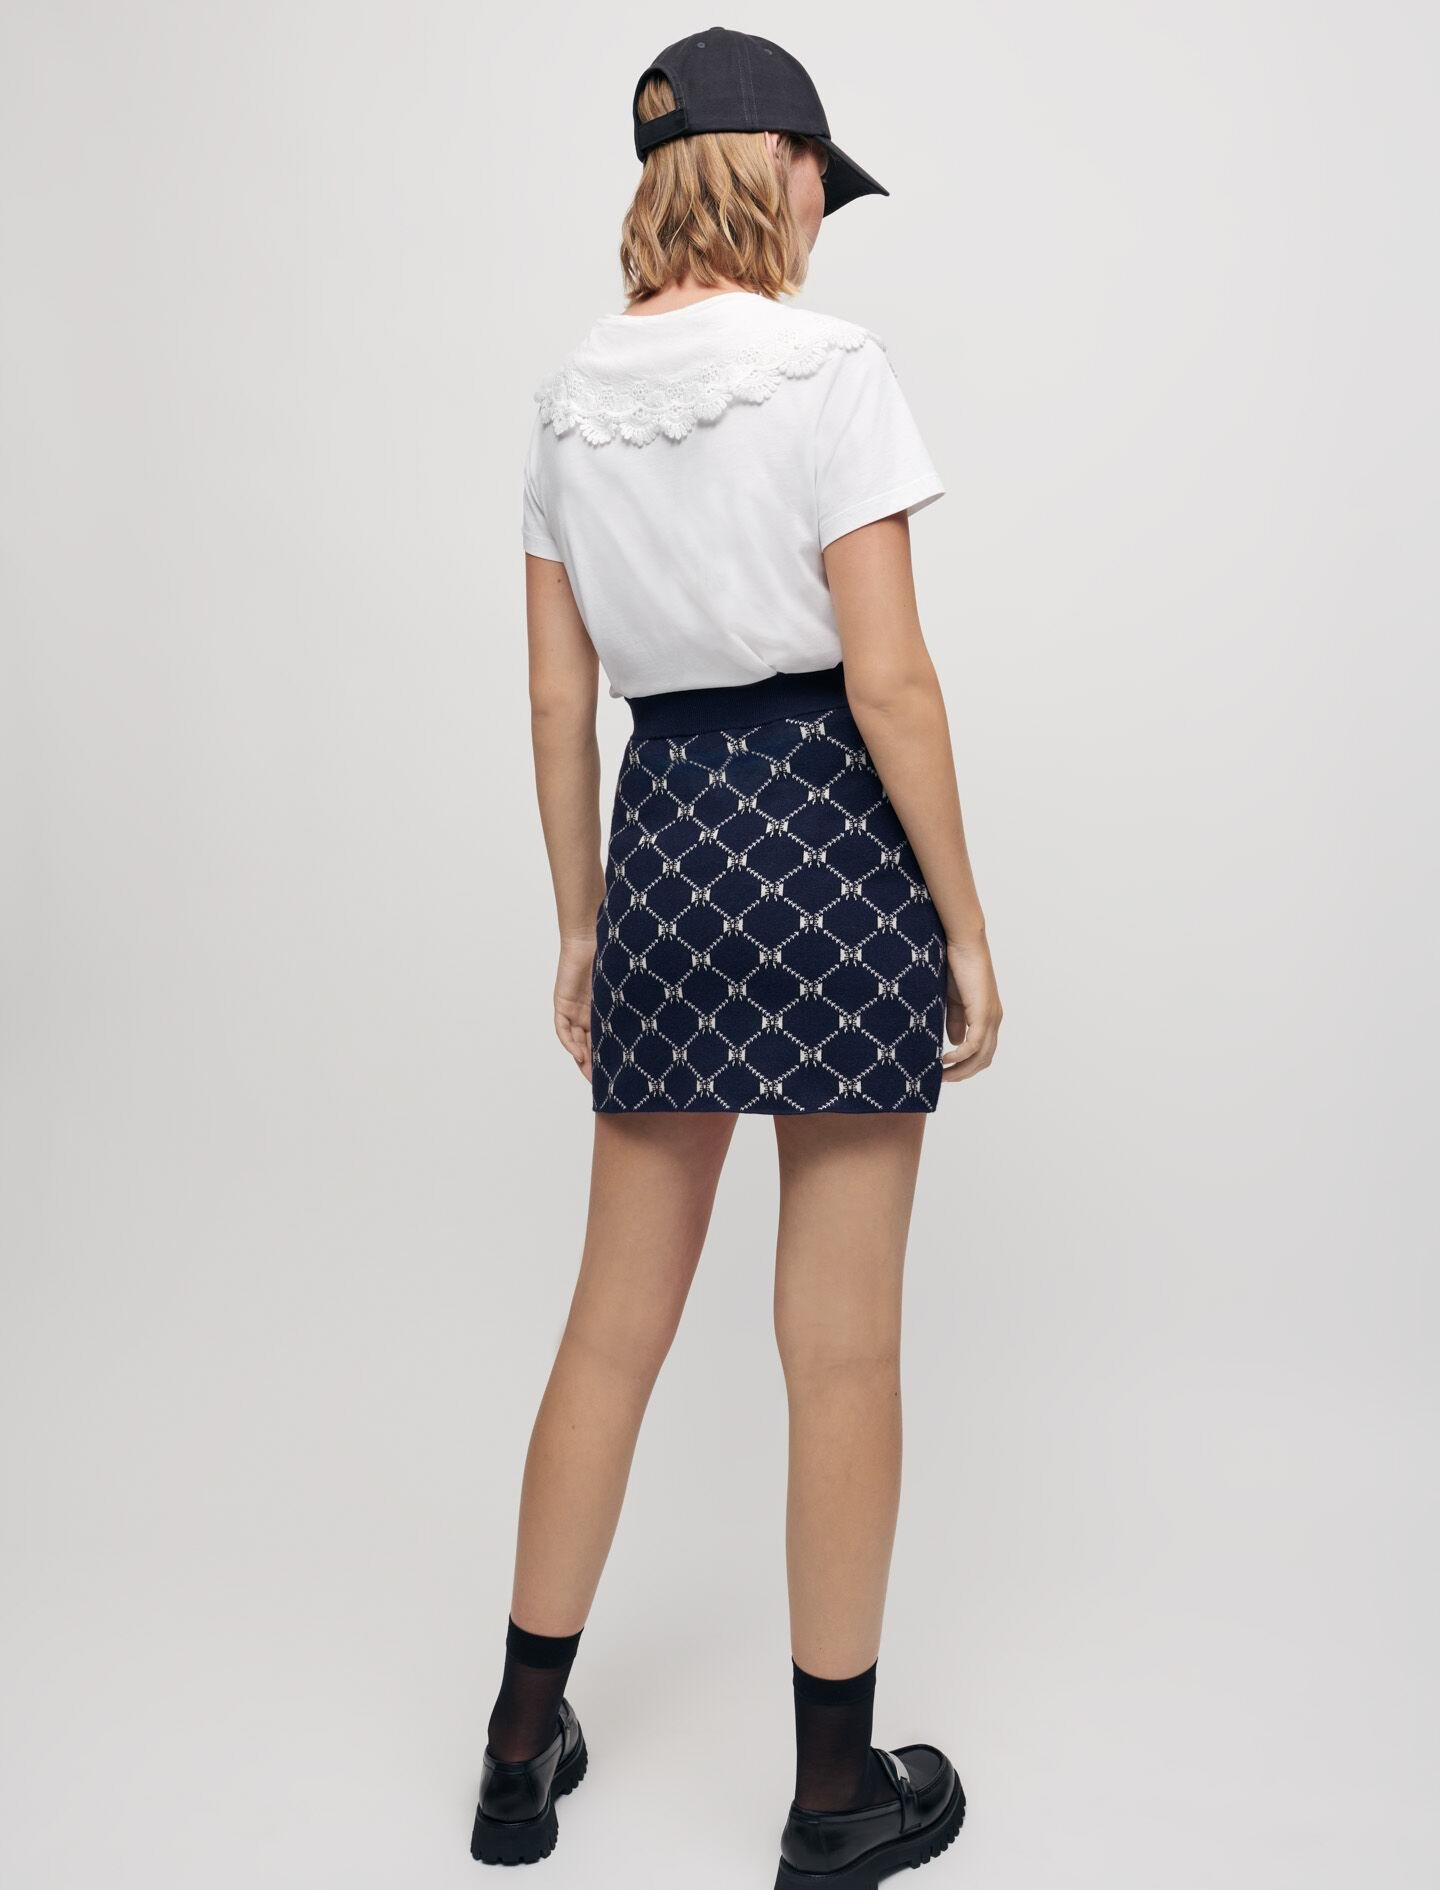 JACQUARD KNIT SKIRT WITH BOWS 3